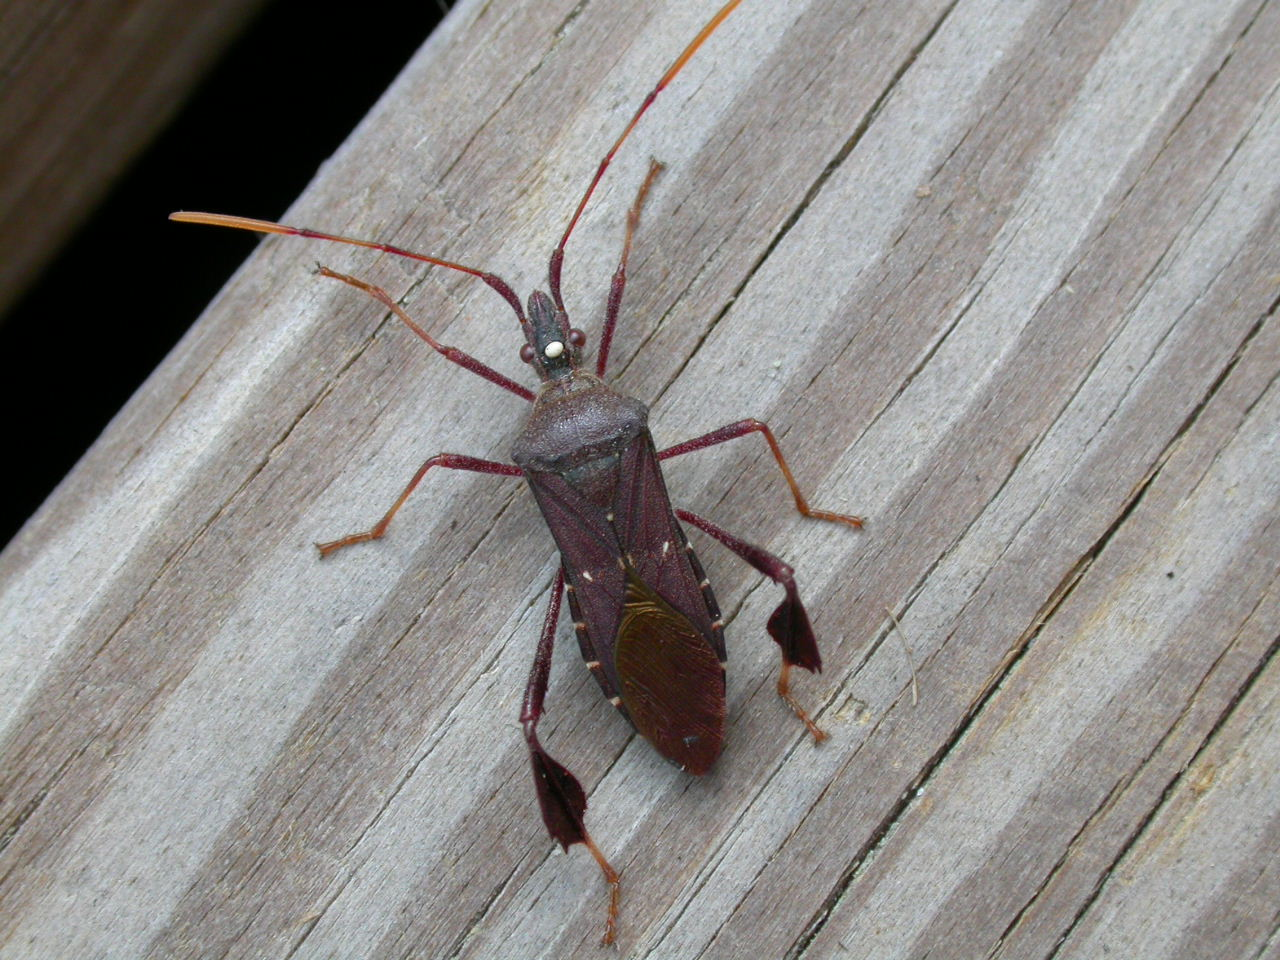 Insect walking on wood photo